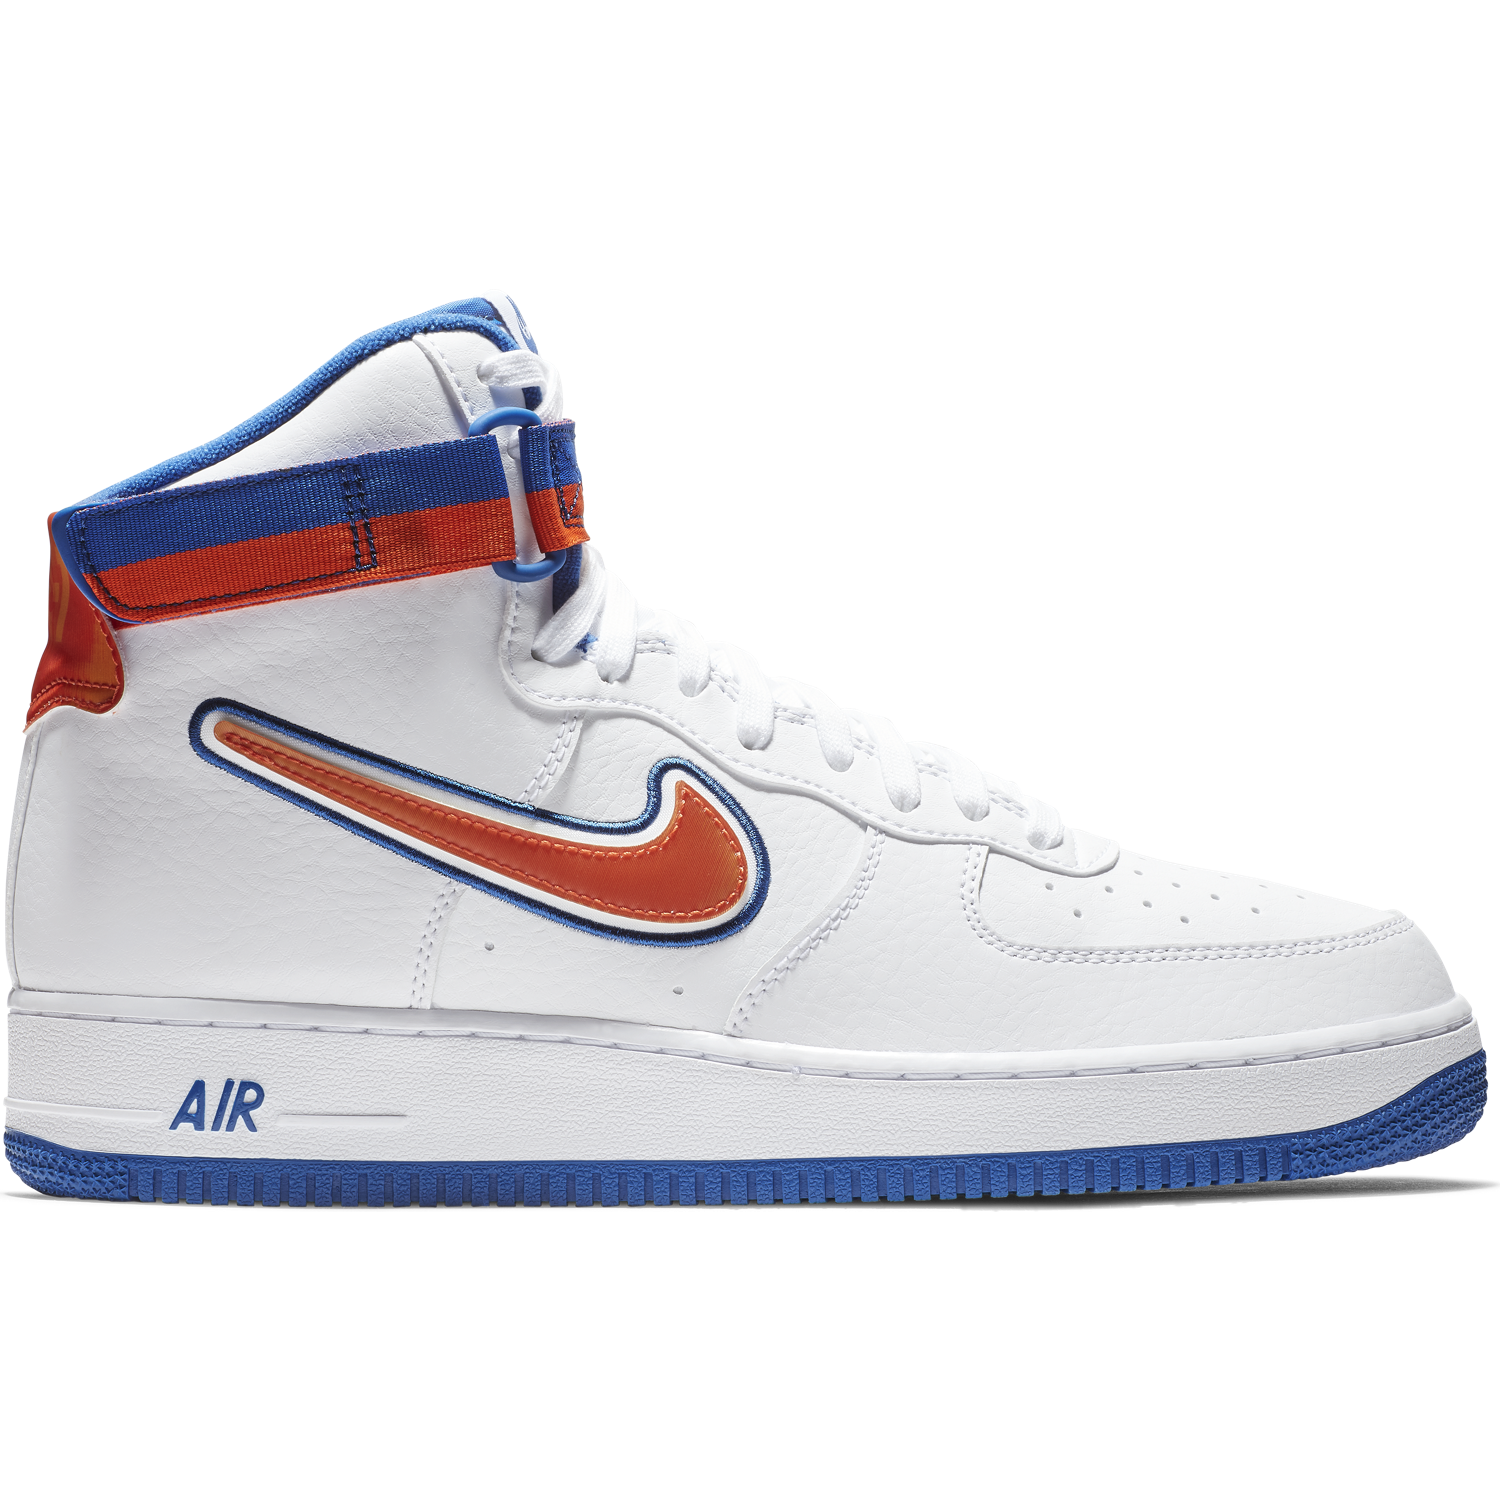 new products f48a3 9ff48 Nike Air Force 1 High 07 LV8 Sport